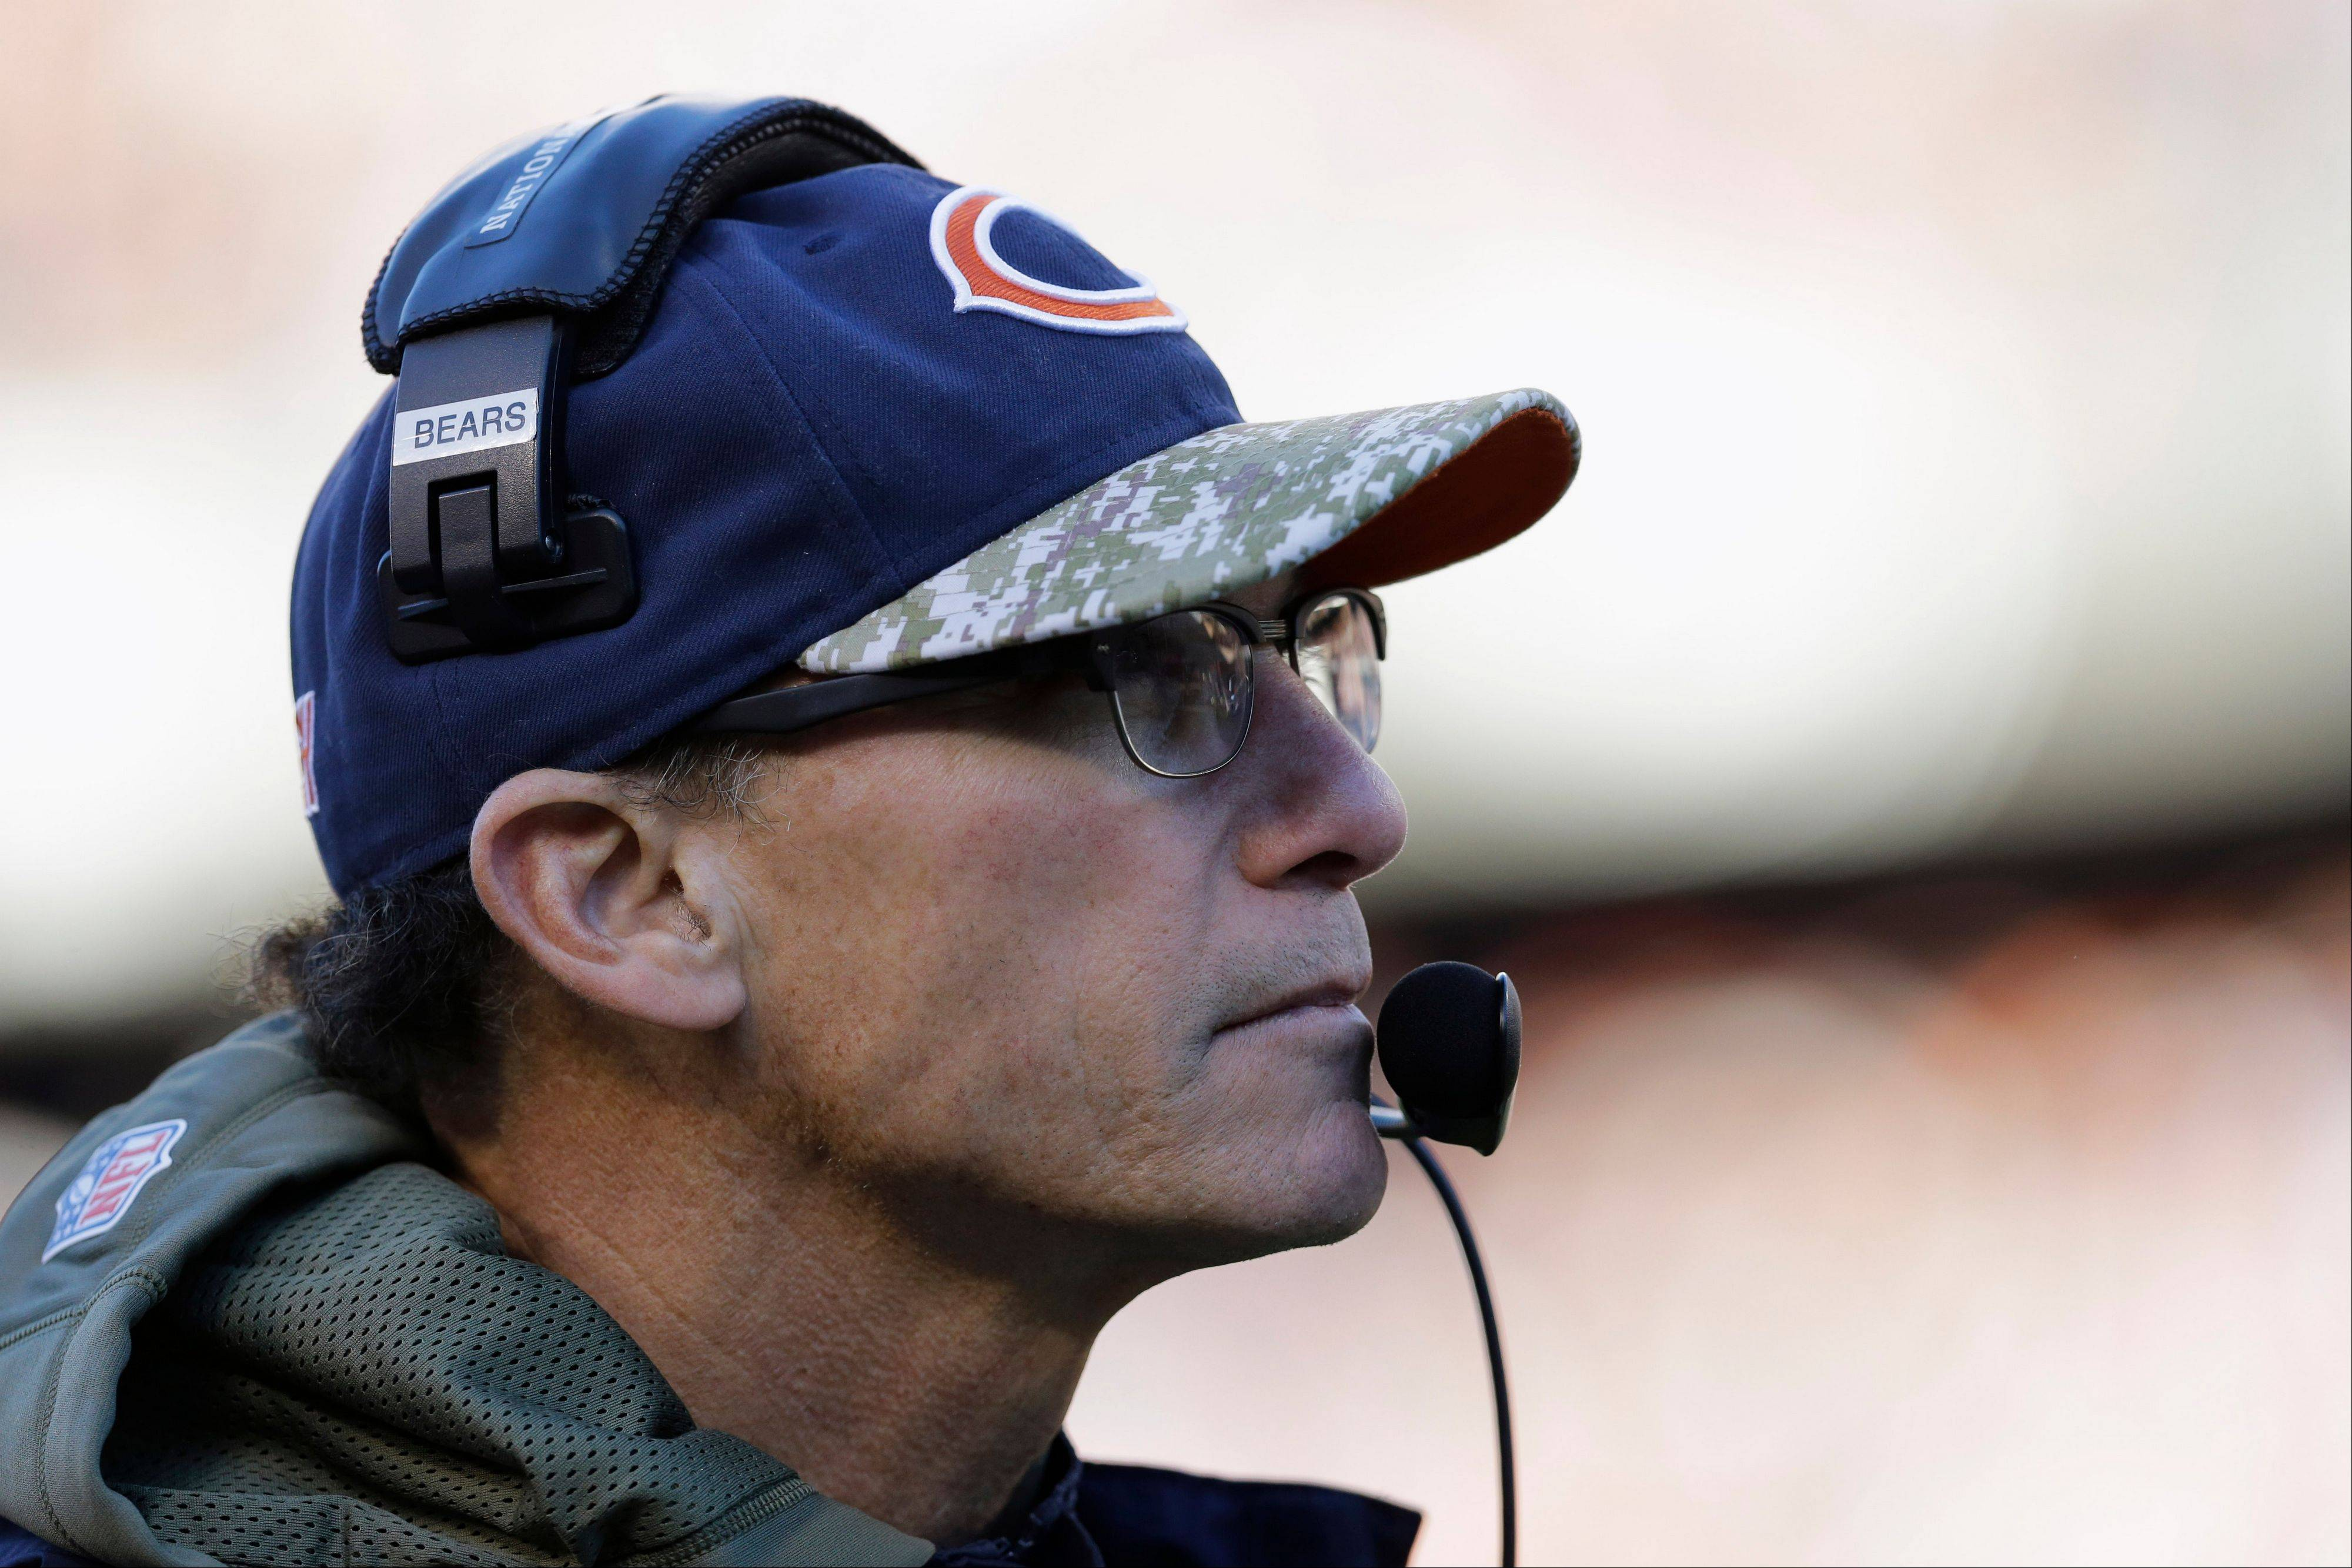 Taking it just one game at a time, Coach? Marc Trestman says he's not dwelling on the Bears' 6-4 record as the team vies for a wild-card playoff spot.